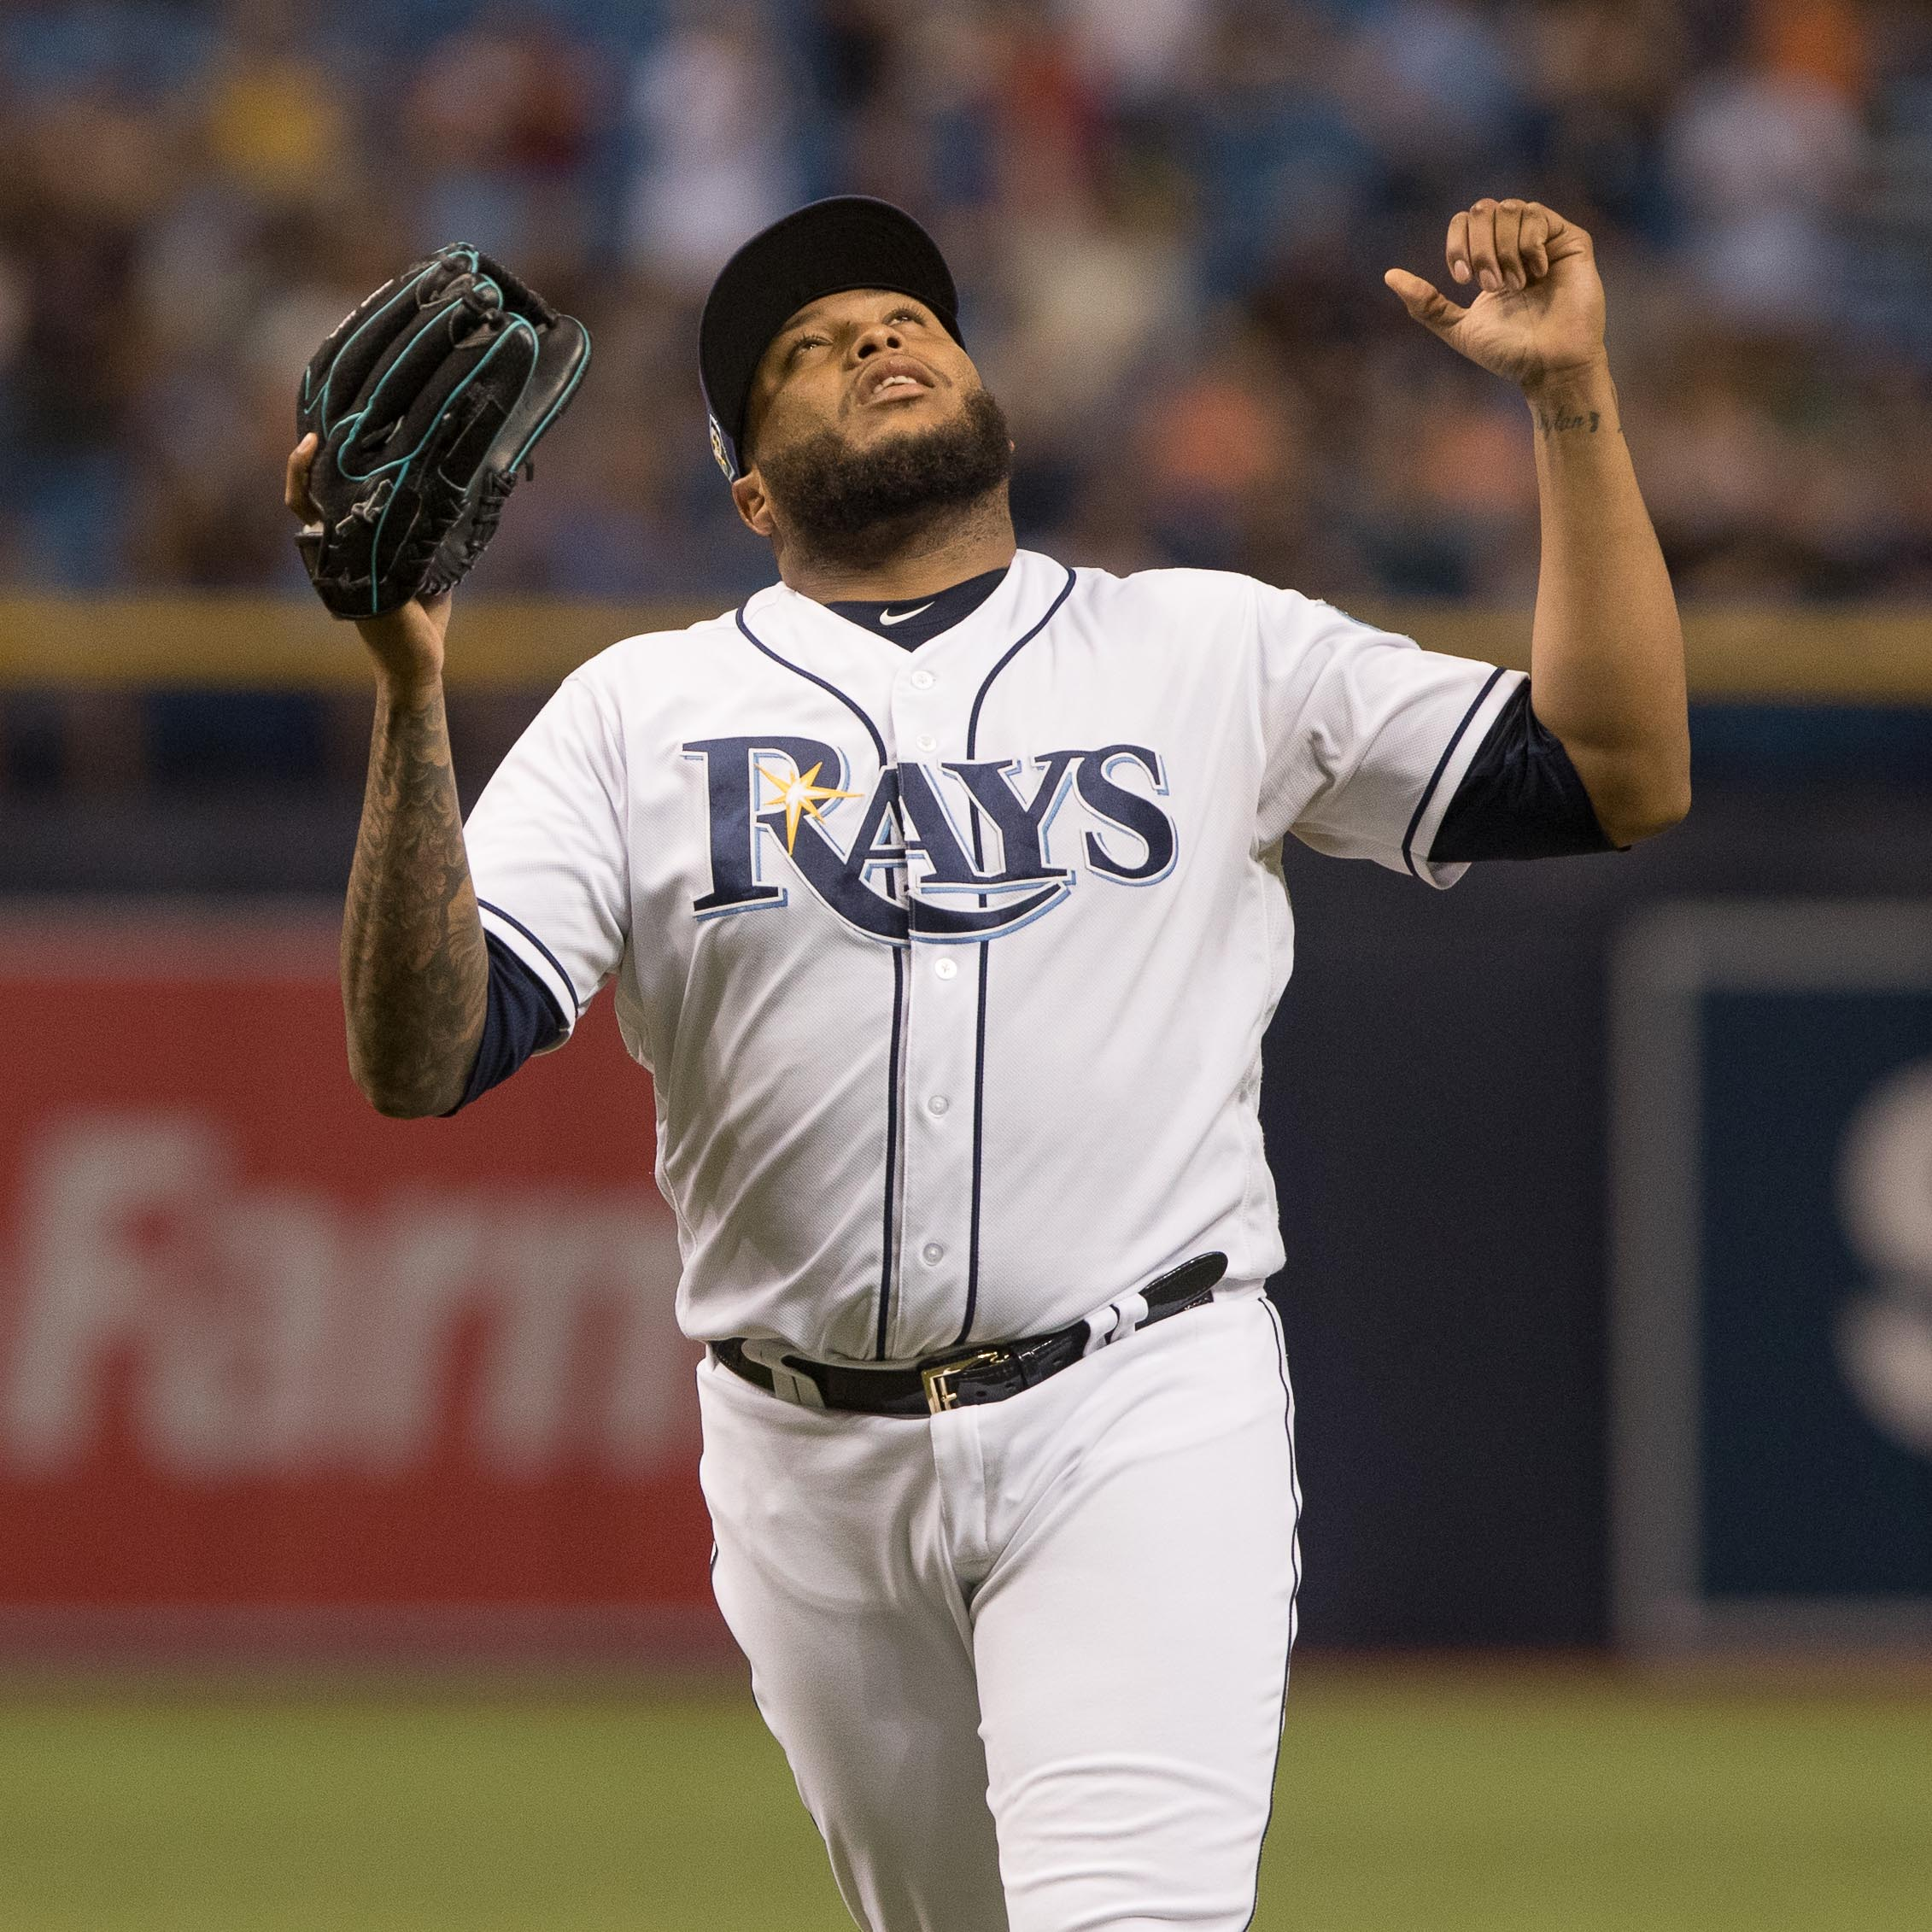 Alvarado celebrates his second save for the Rays./STEVEN MUNCIE